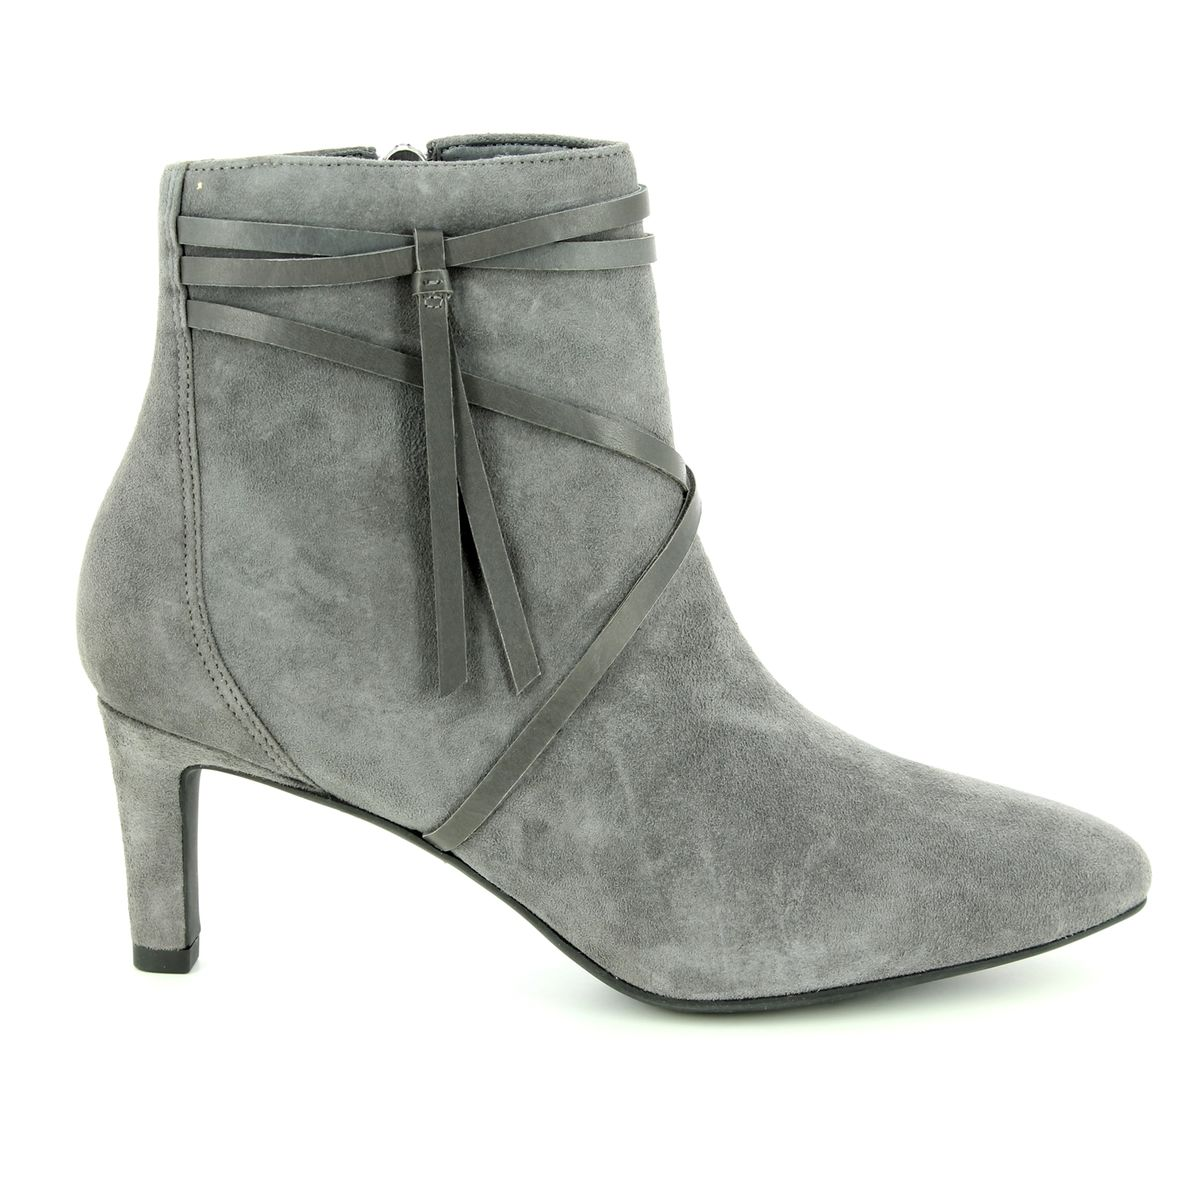 567f374cd Clarks Ankle Boots - Grey suede - 3636 94D CALLA ASTER